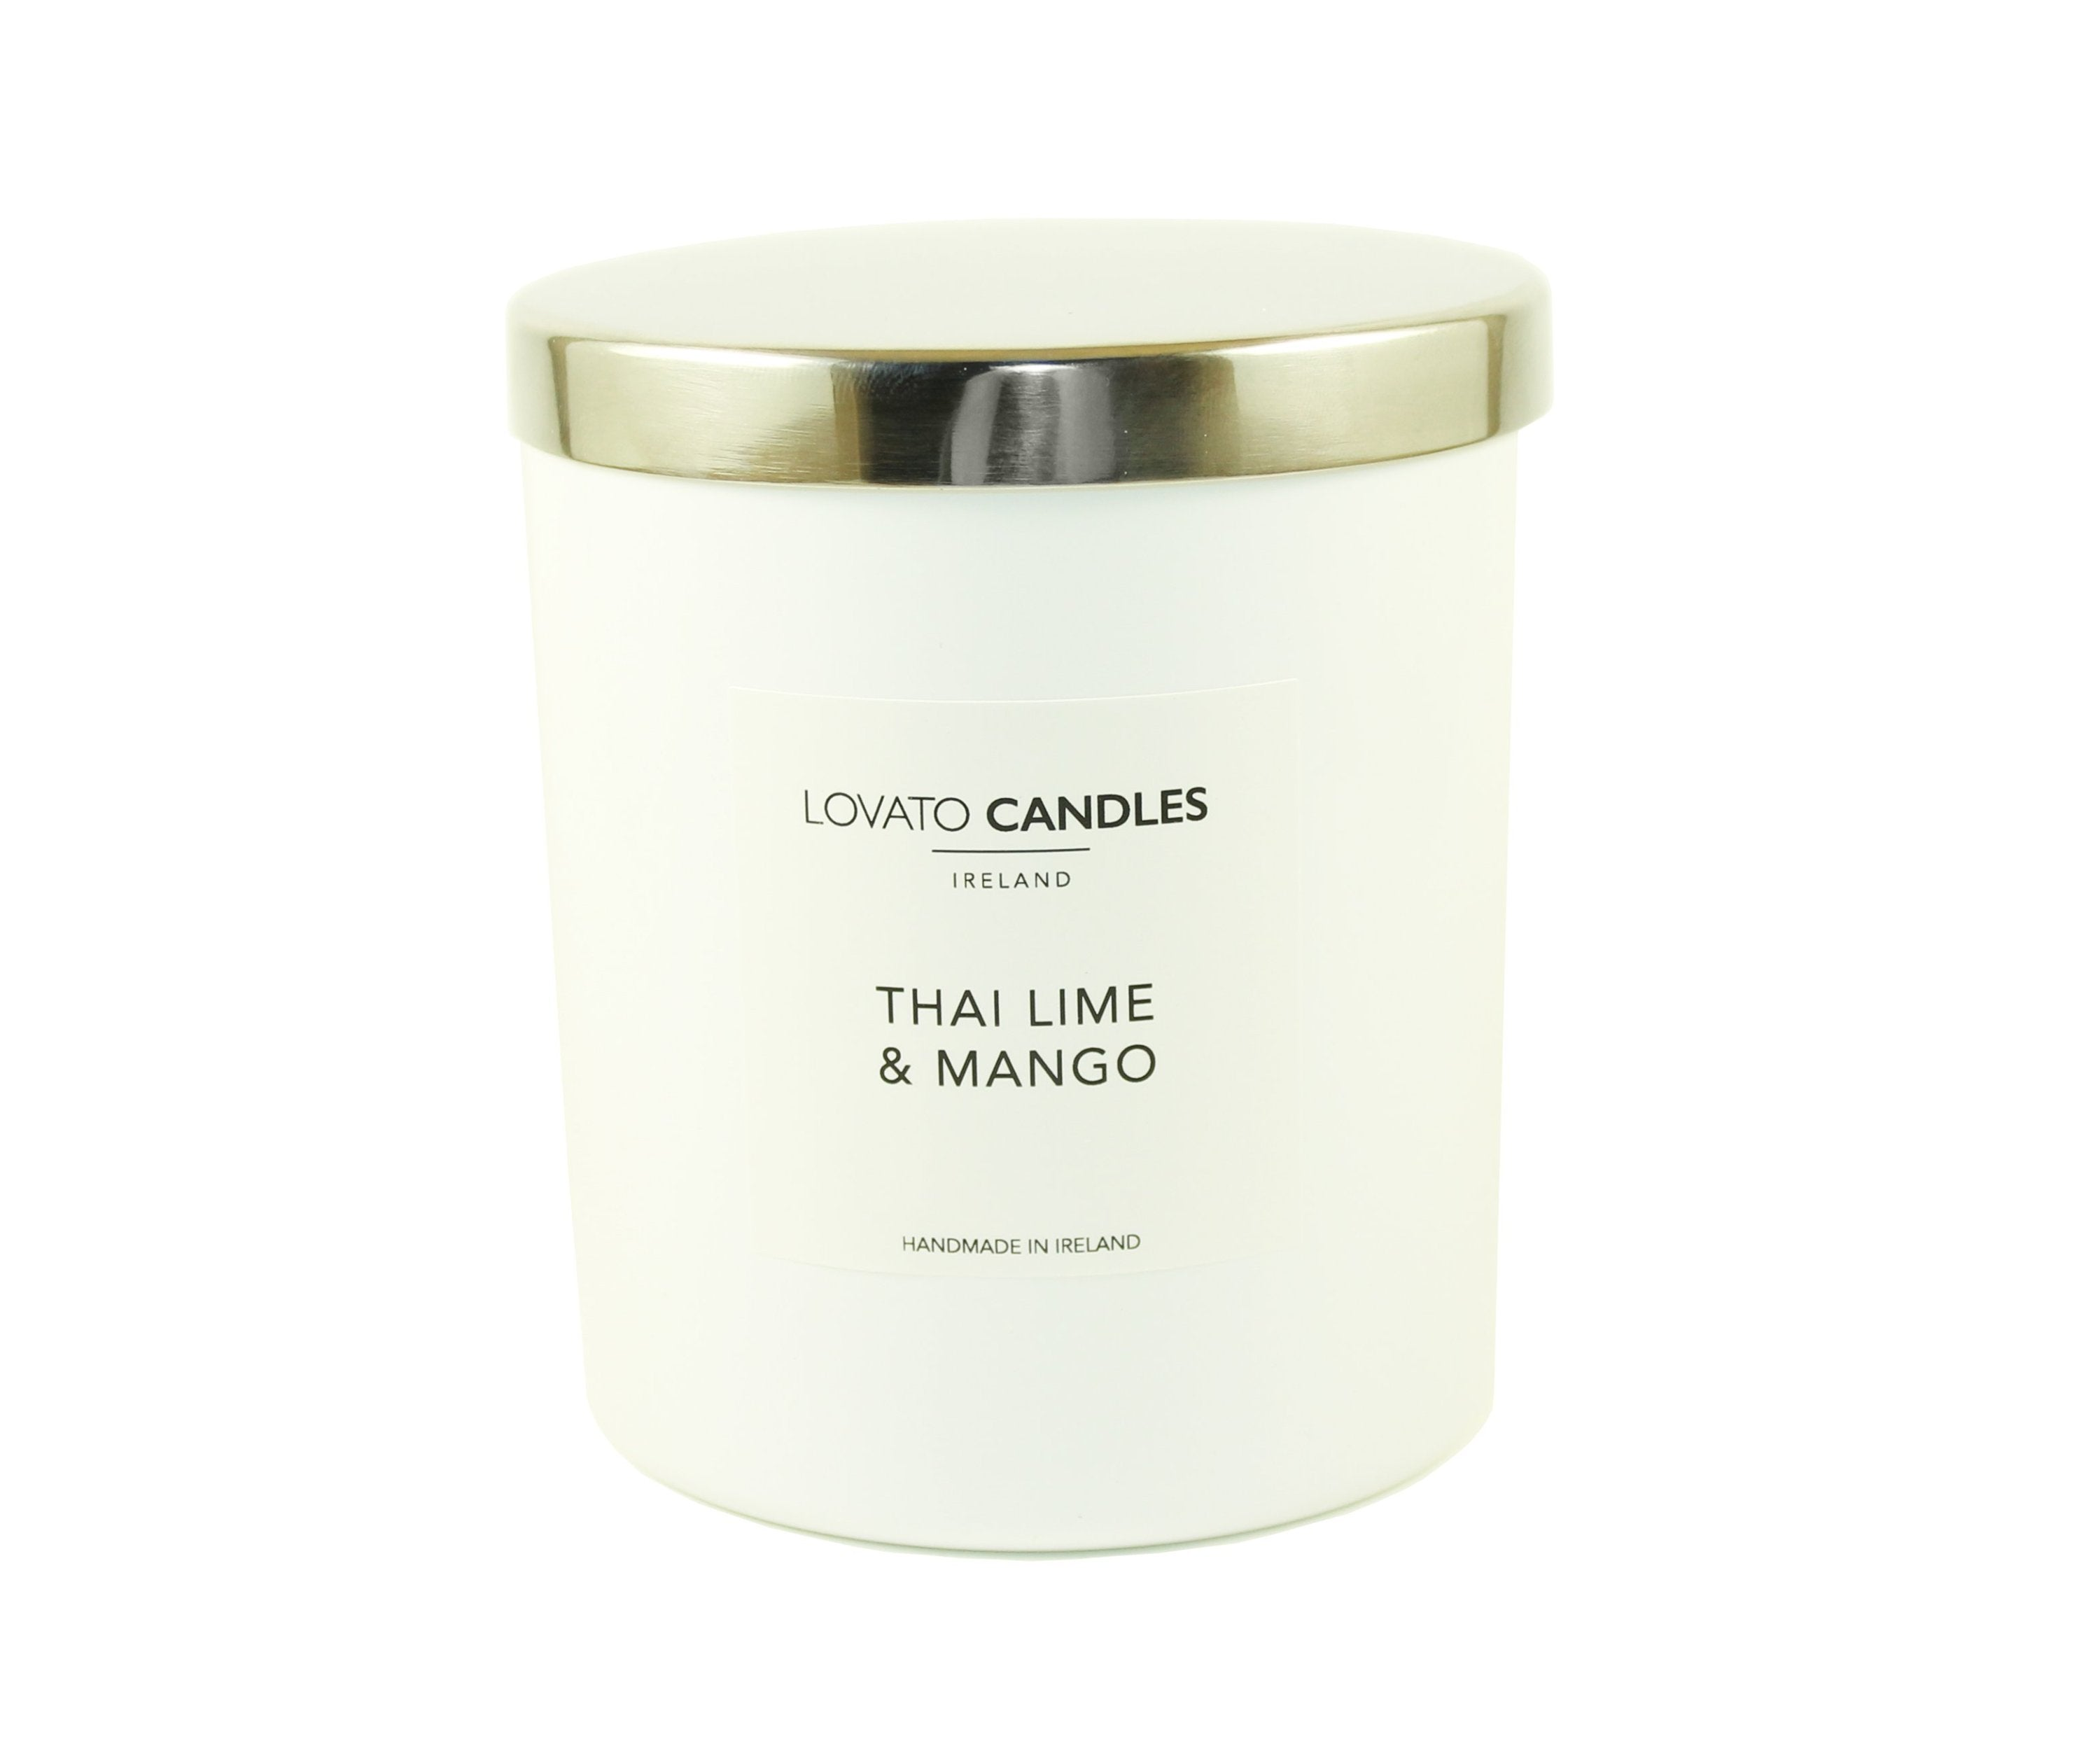 Luxury White Candle - Thai Lime & Mango - Lovato Candles